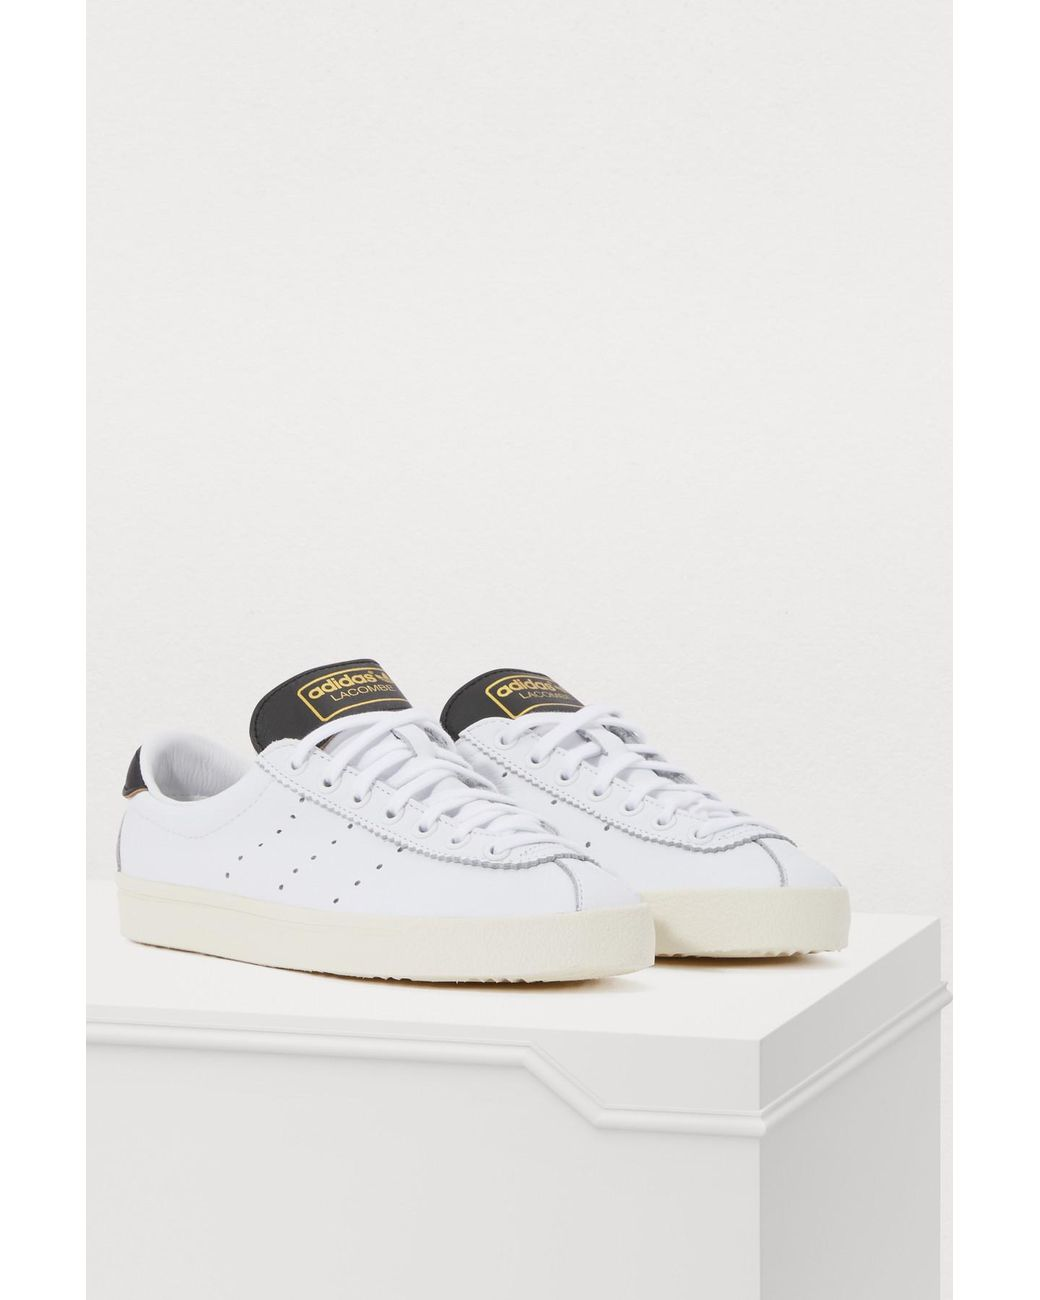 on sale ebf53 91099 adidas Lacombe Sneakers in White - Lyst